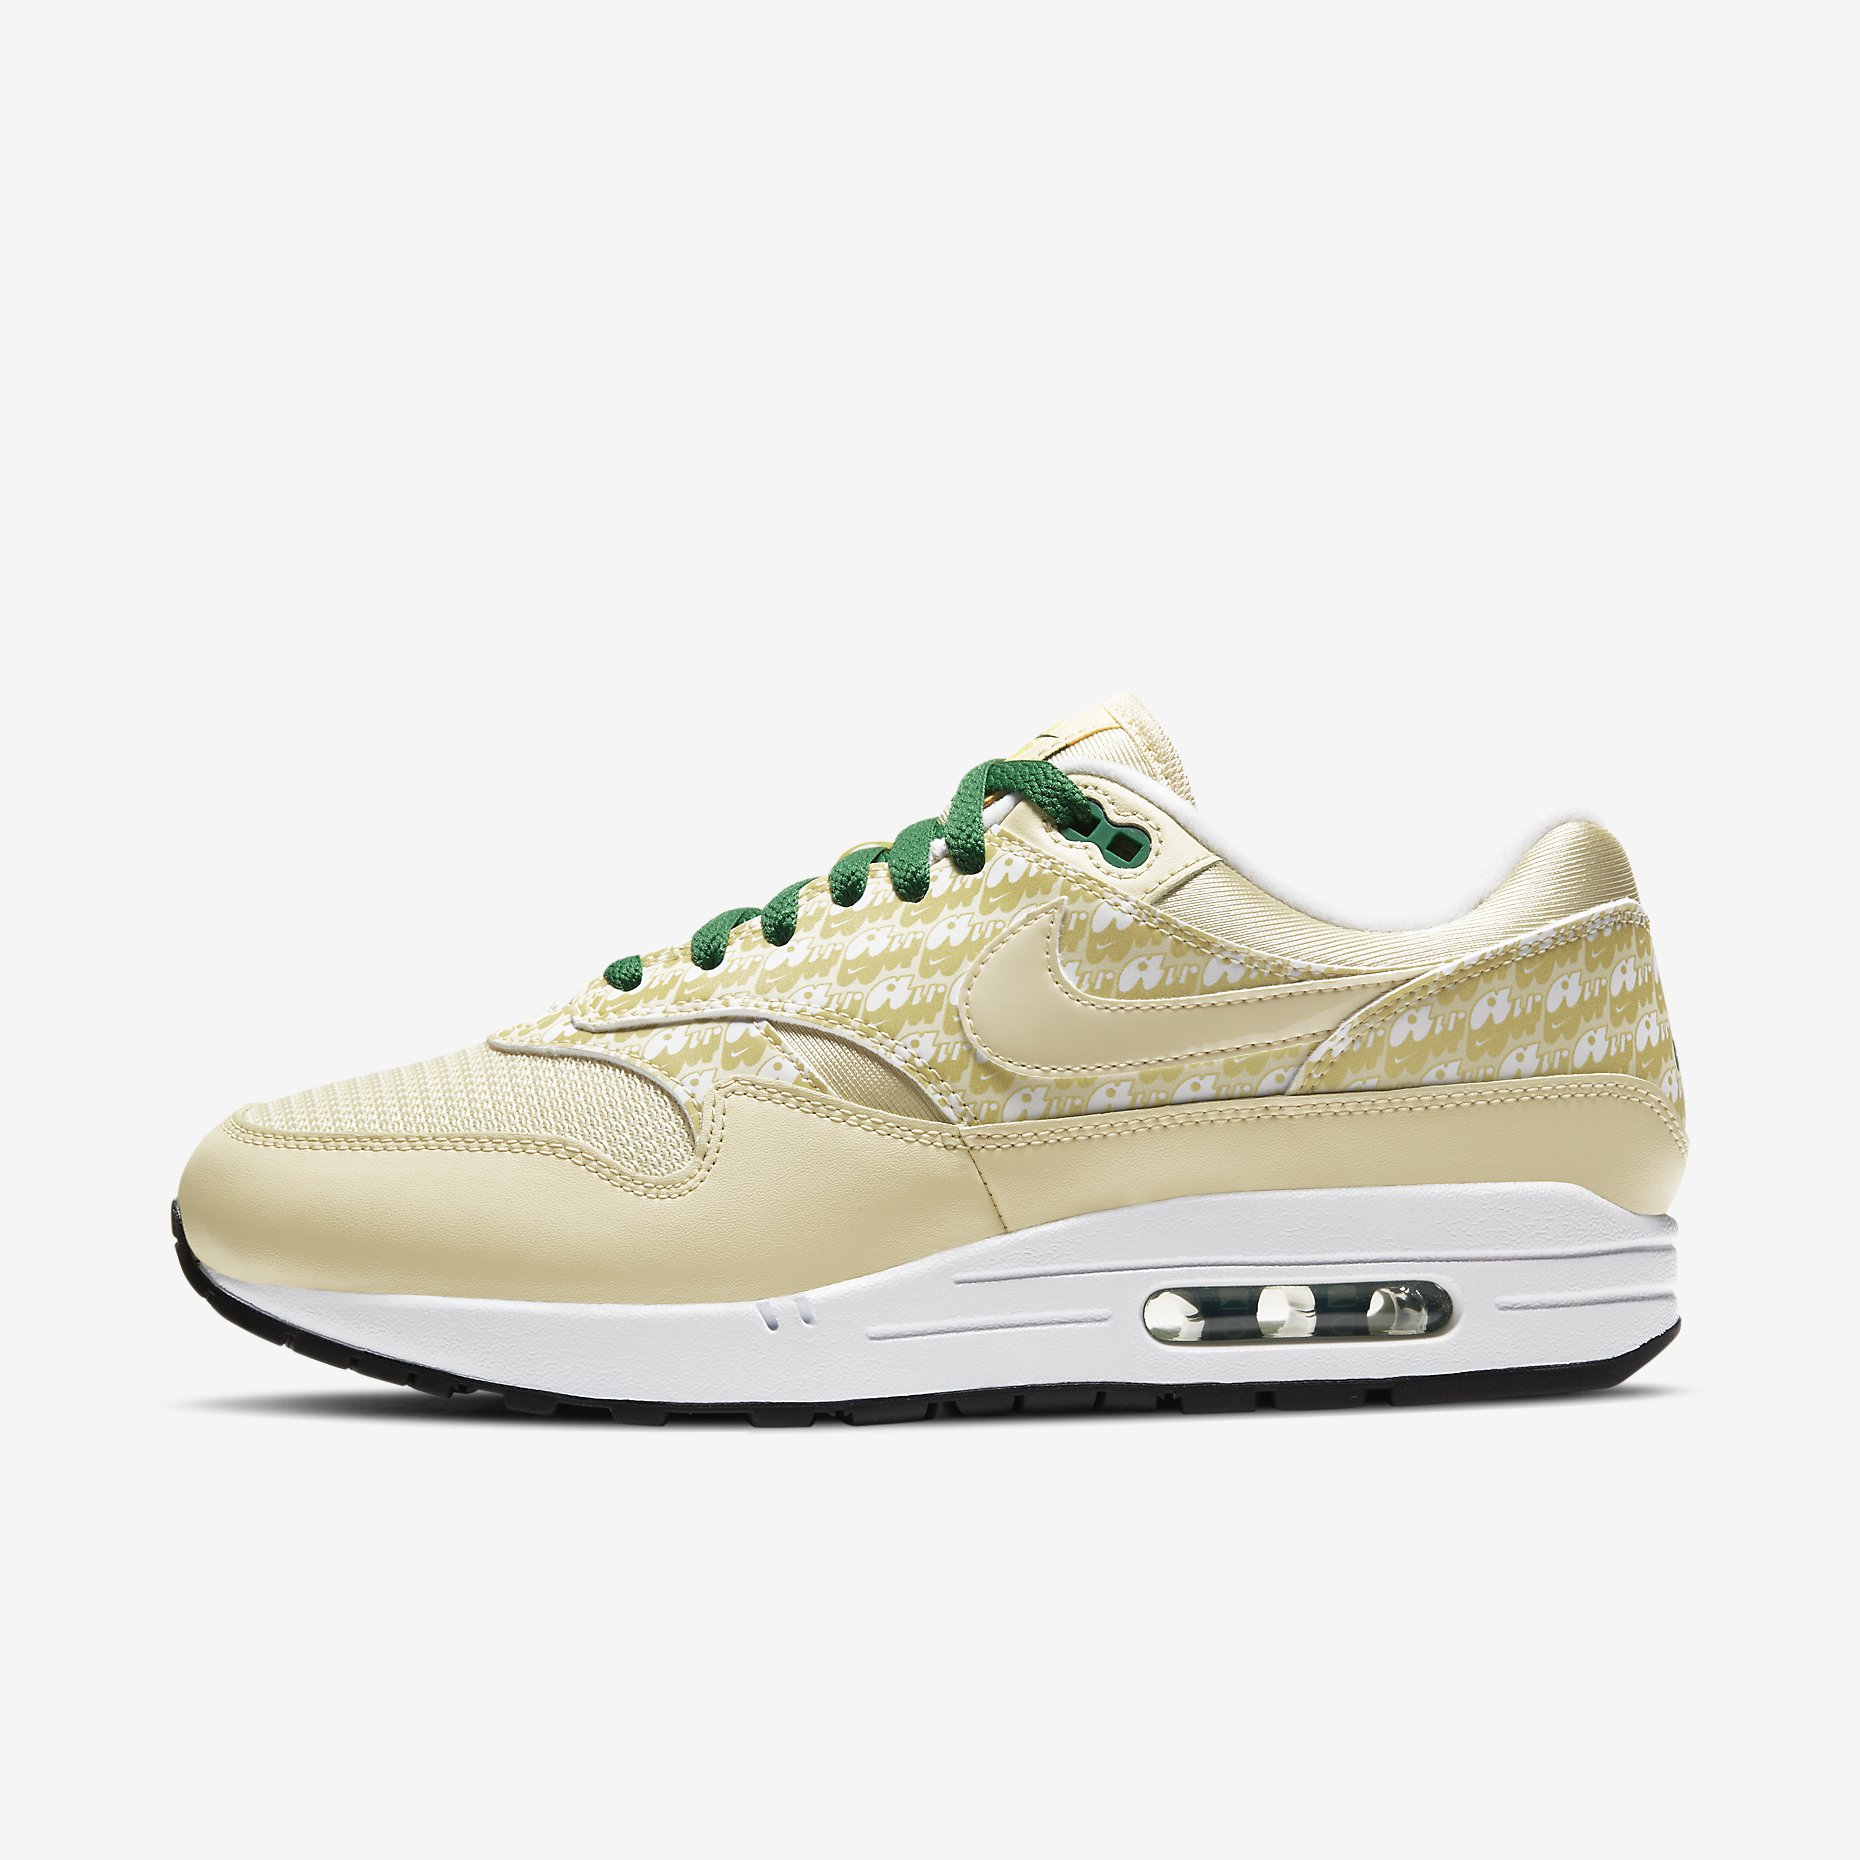 Nike Air Max 1 Premium QS Powerwall 'Lemonade'}